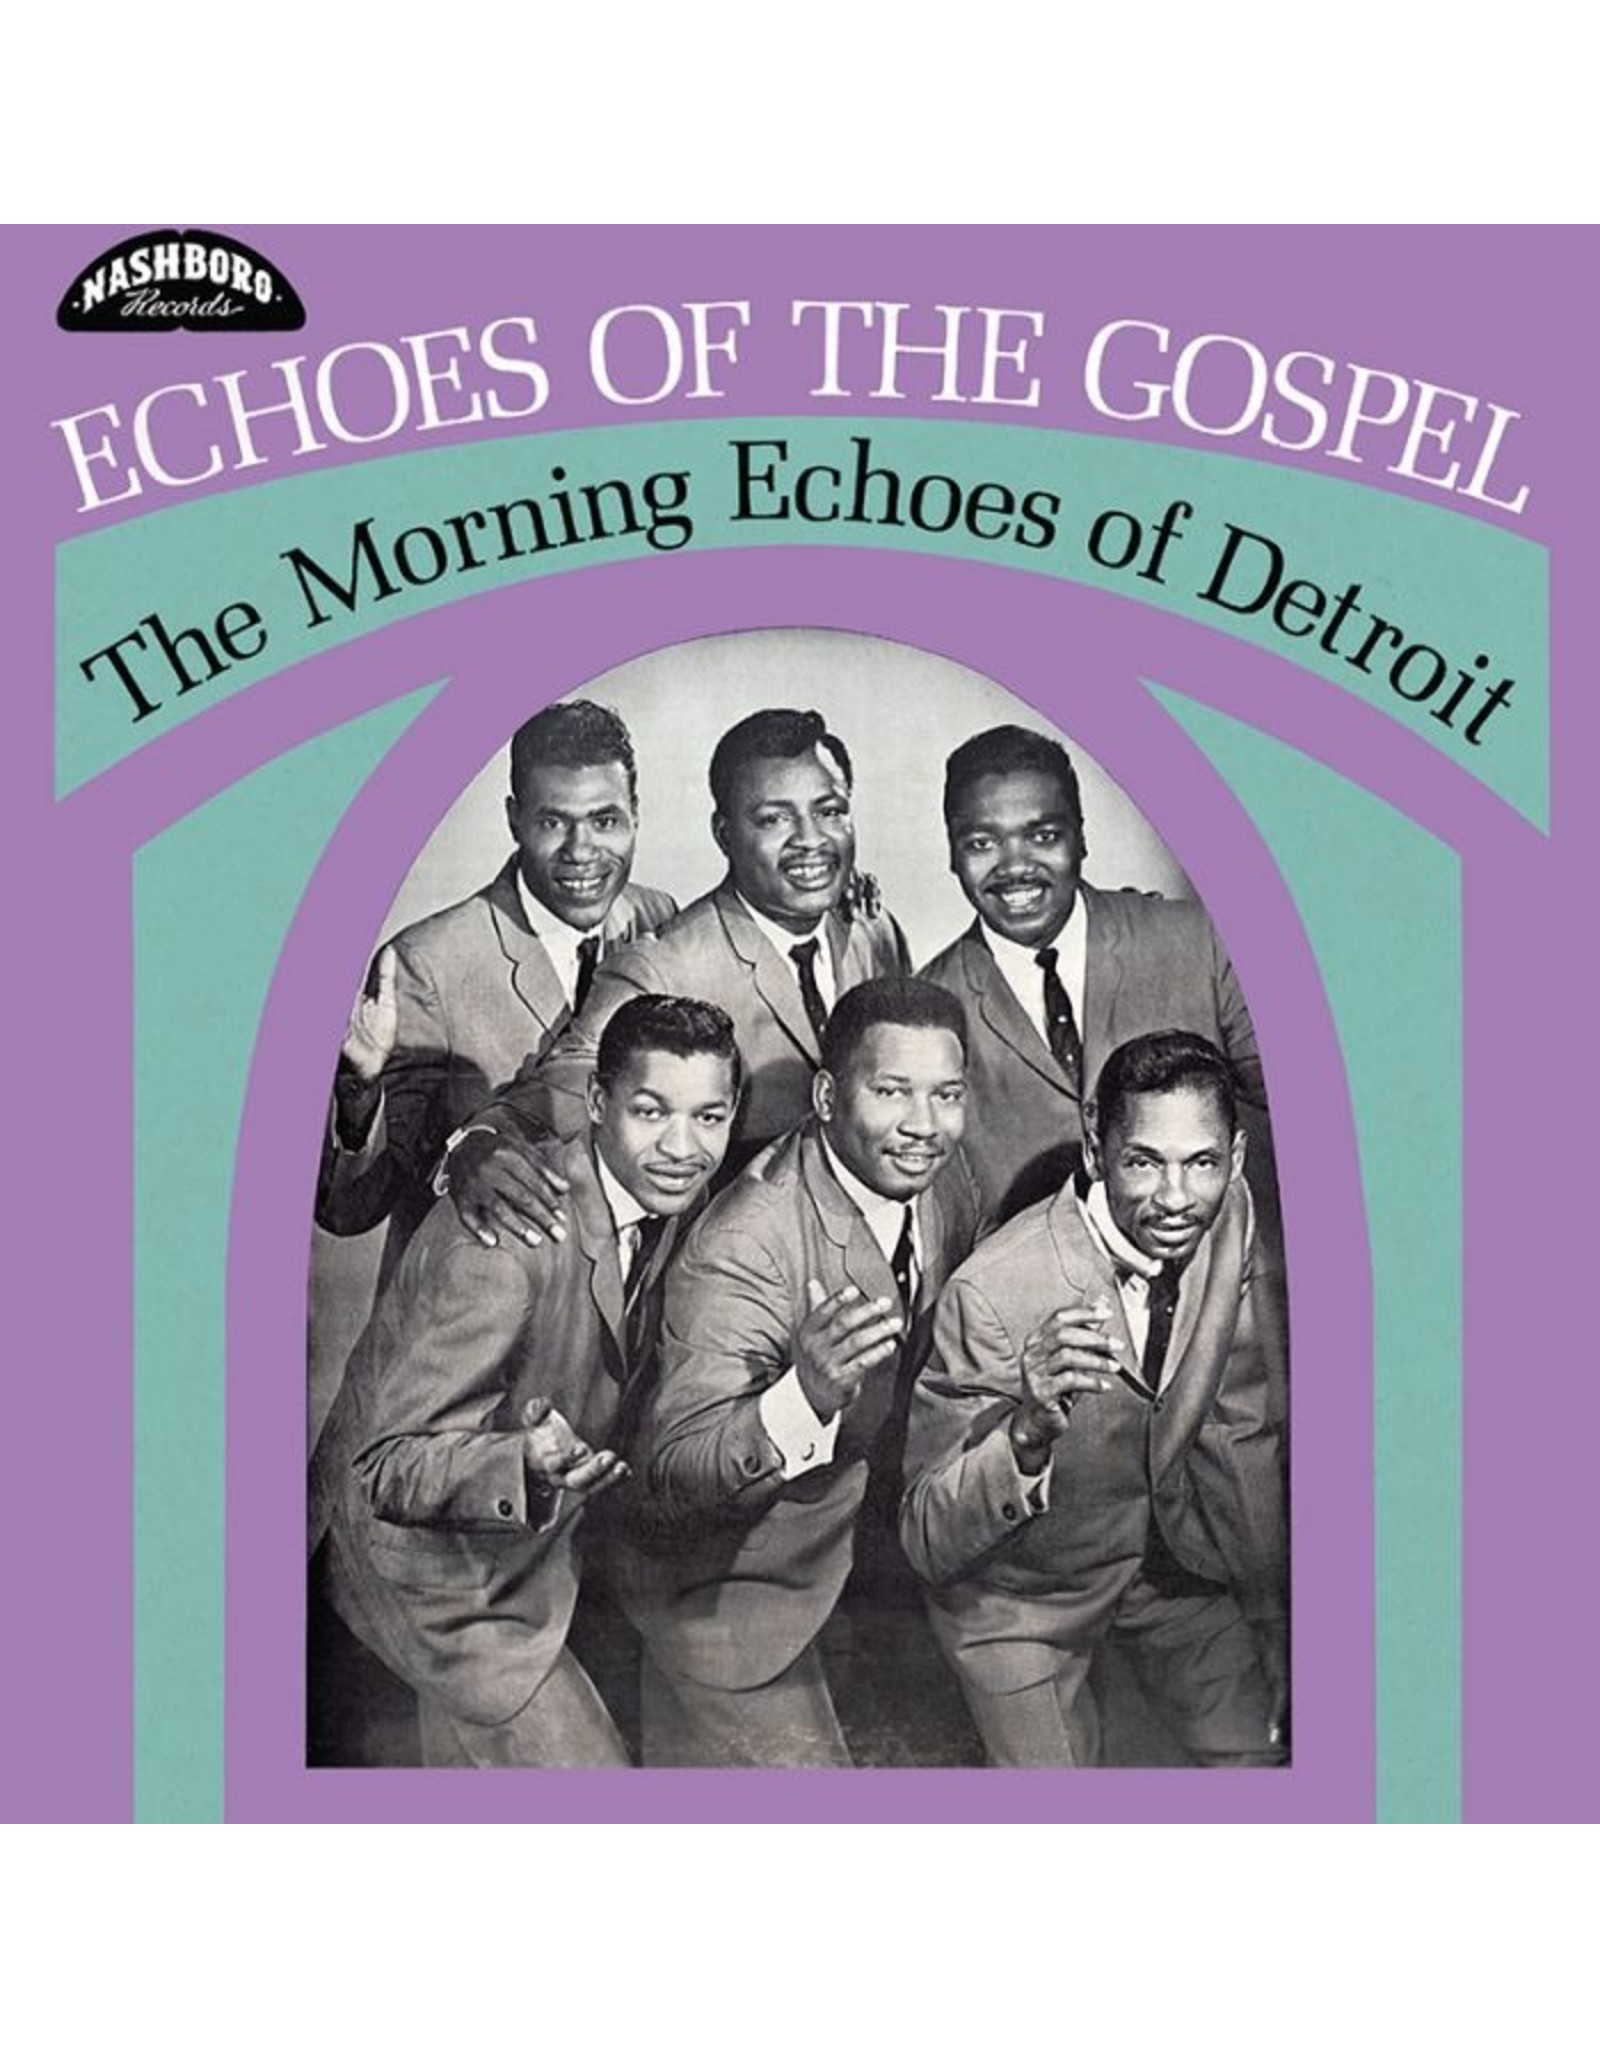 New Vinyl The Morning Echoes Of Detroit - Echoes Of The Gospel LP